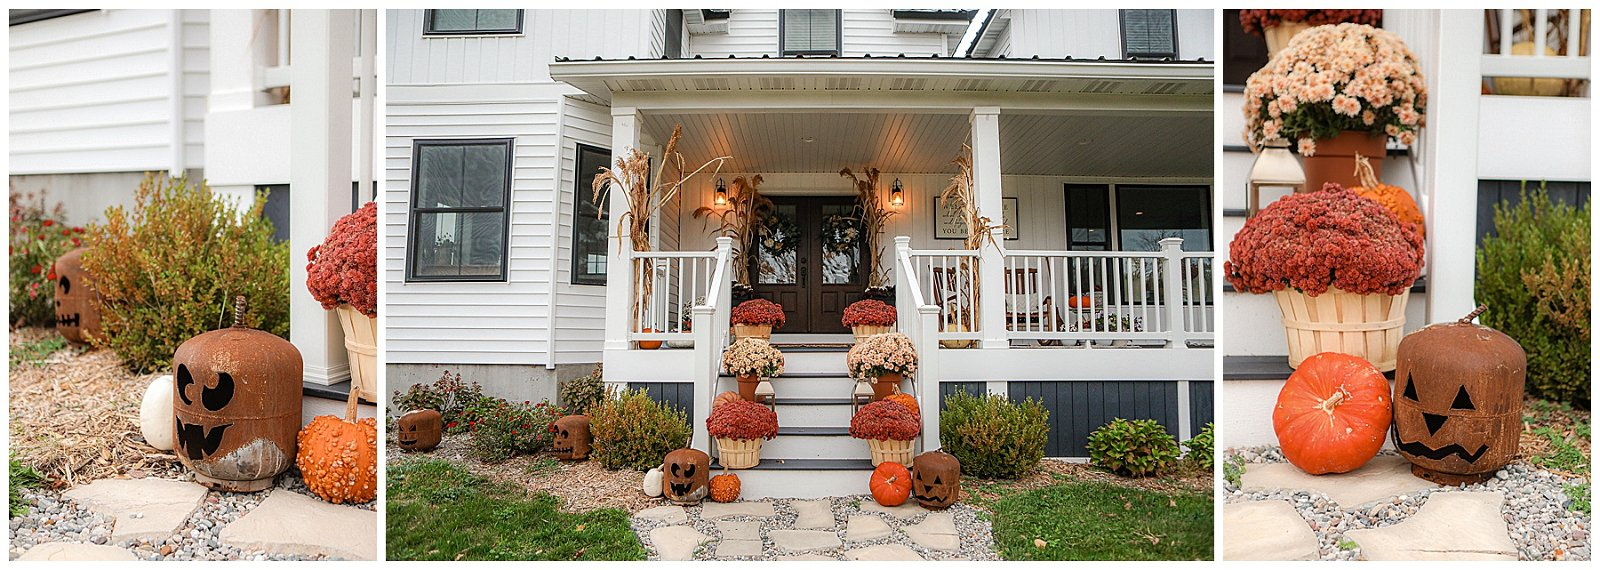 Fall Front porch decor 2020